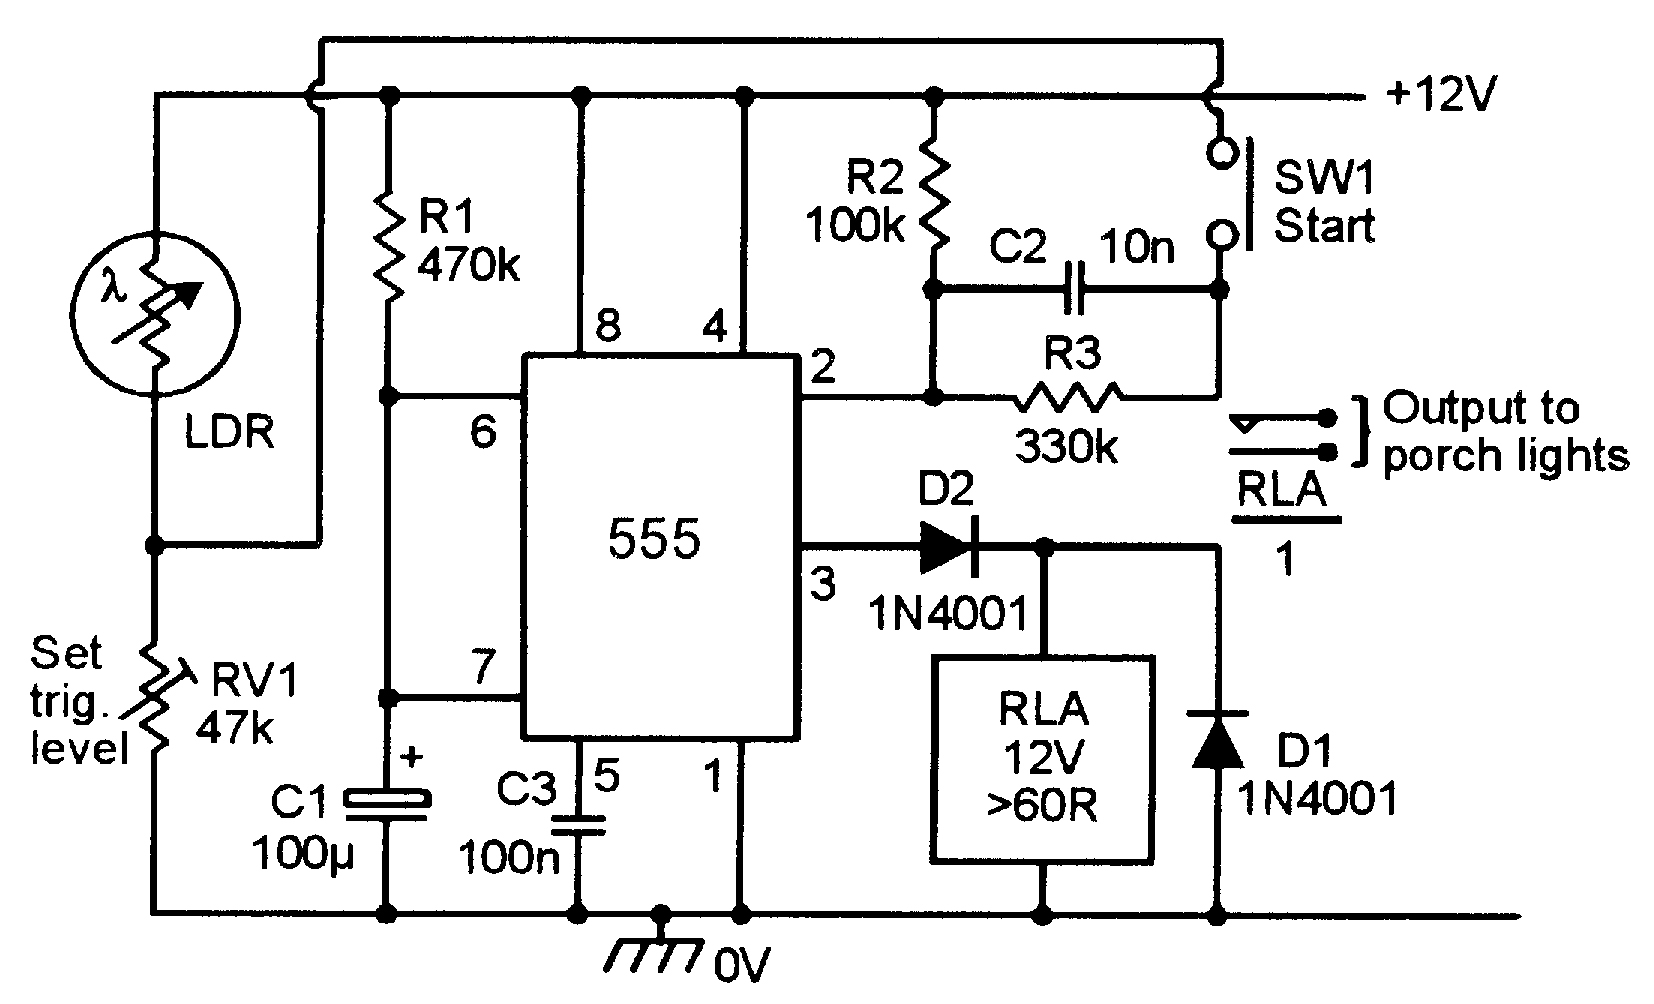 555 Monostable Circuits Nuts Volts Magazine Negative Auxiliary Voltage Circuit Schematic Figure 13 Automatic Porch Light Turns On For A Pre Set Period Only When Triggered At Night